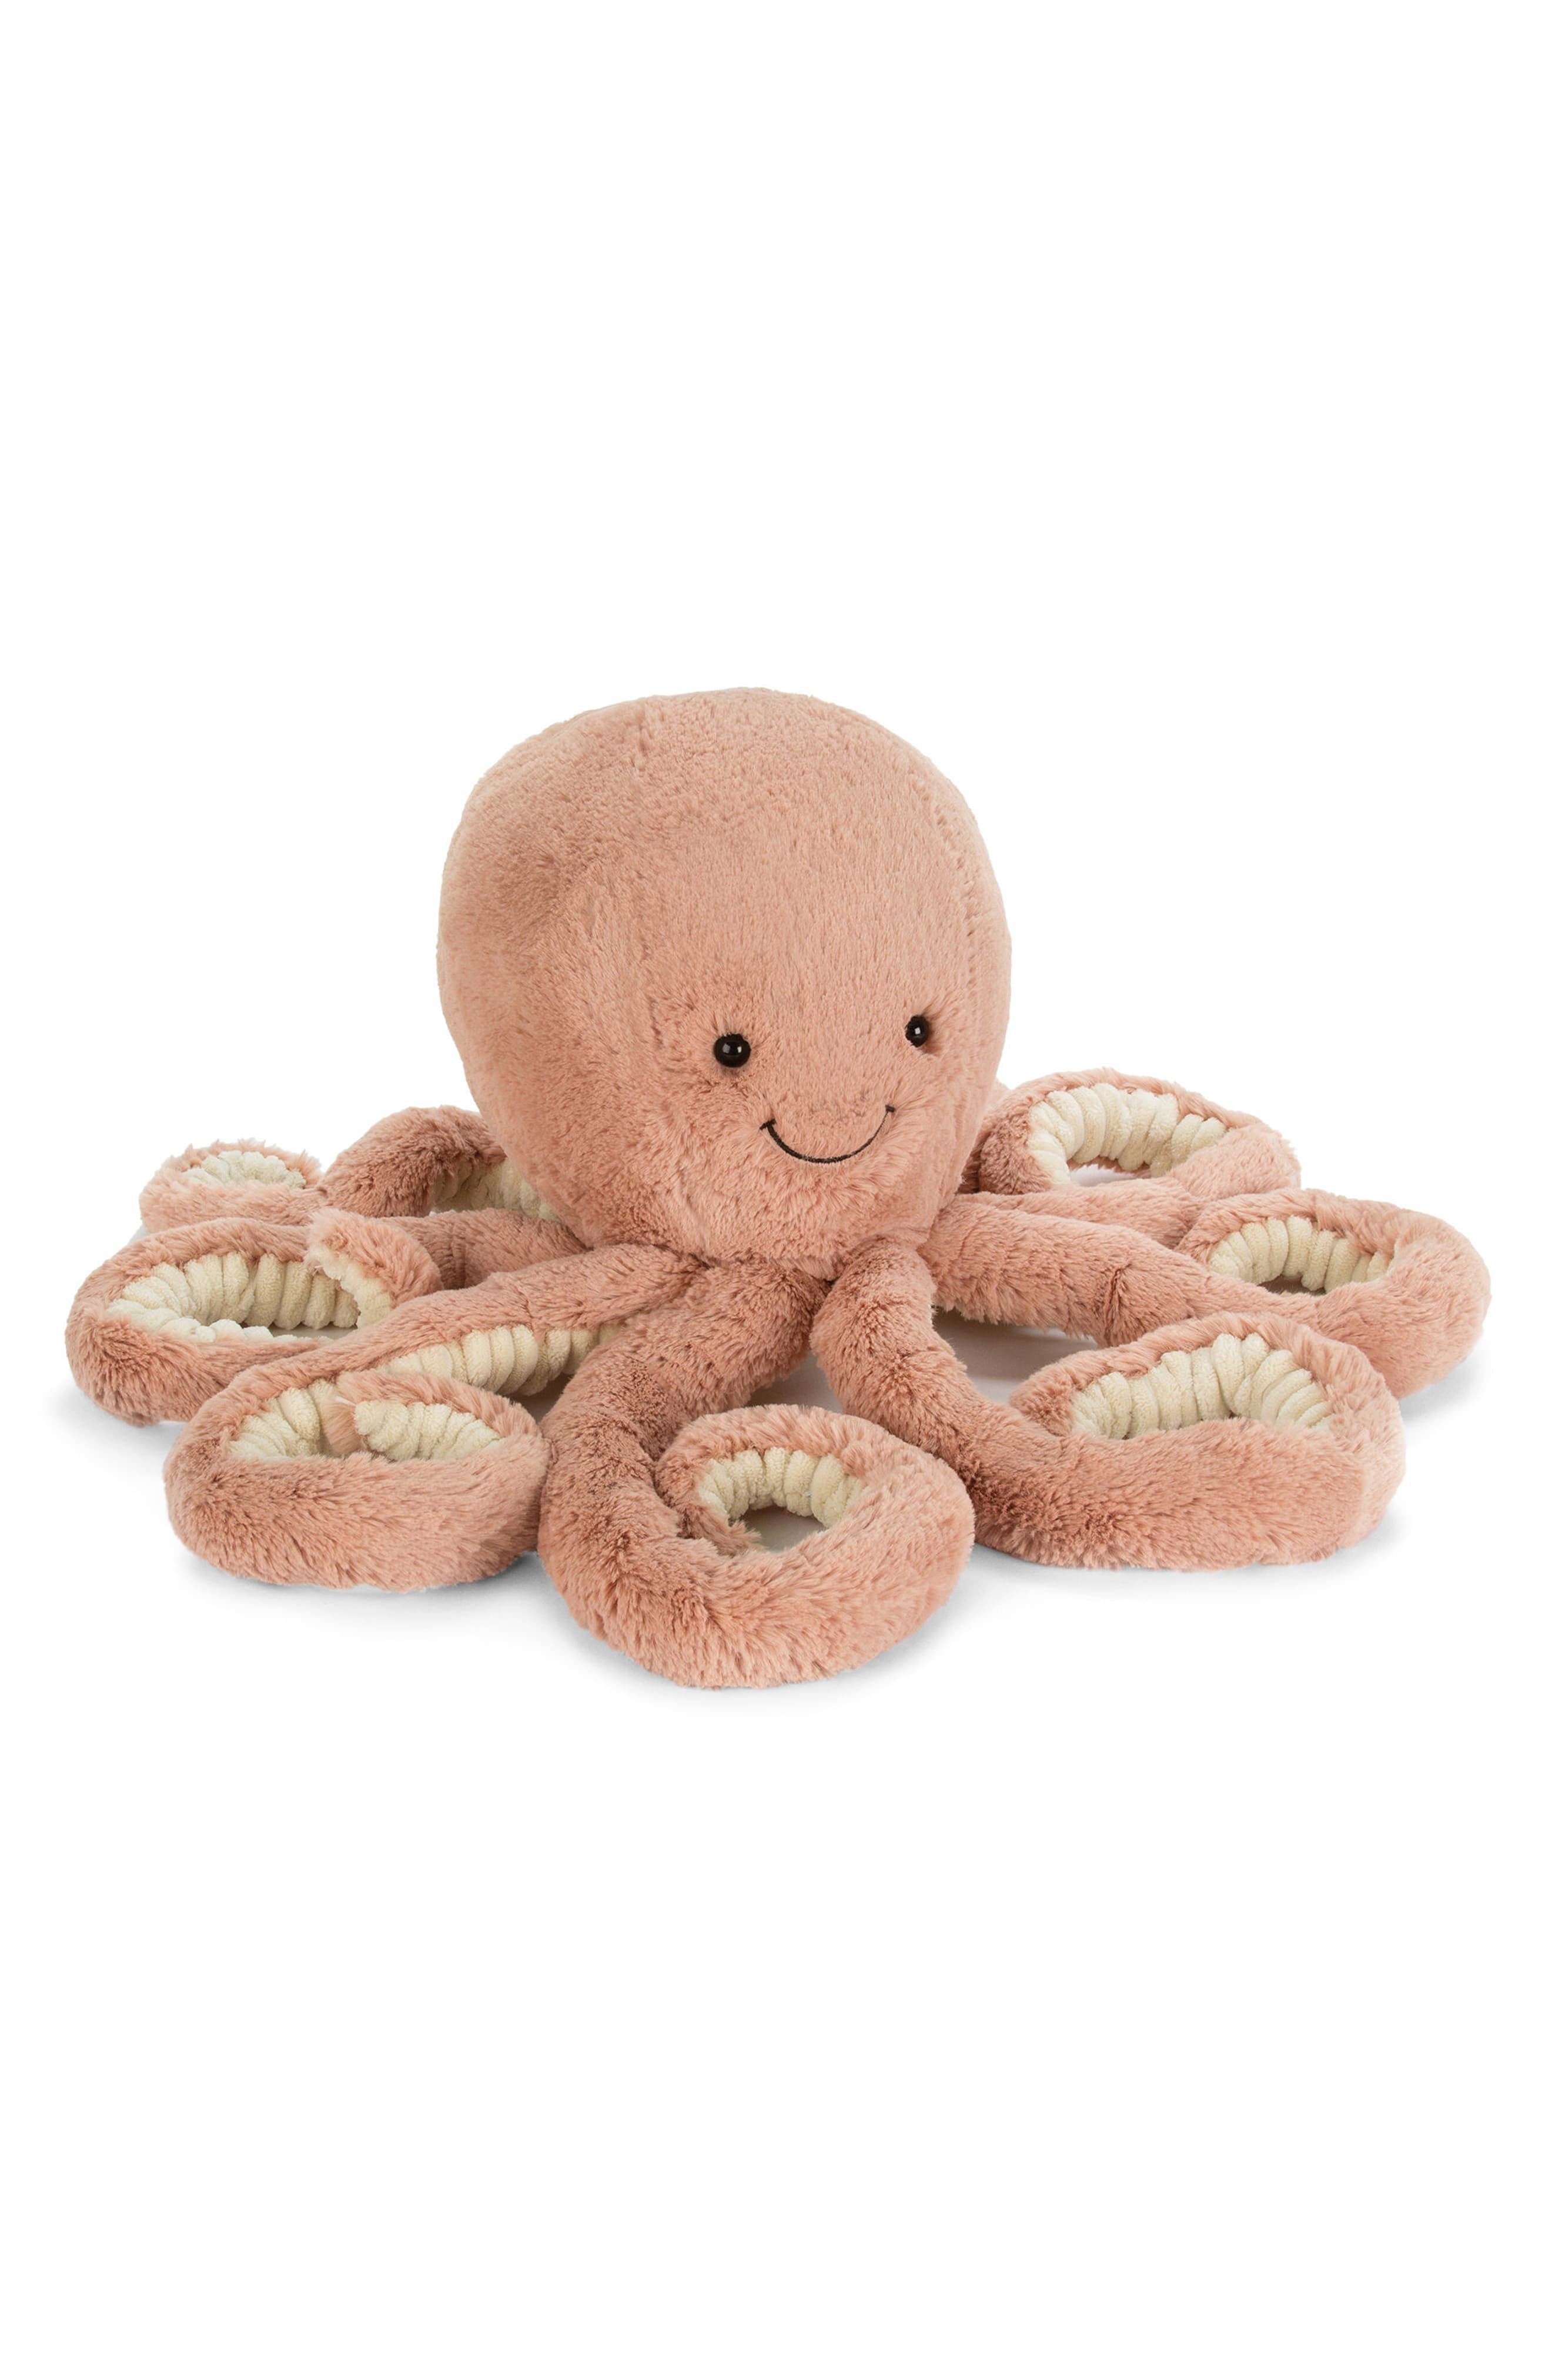 Jellycat Small Odell Octopus Stuffed Animal Products